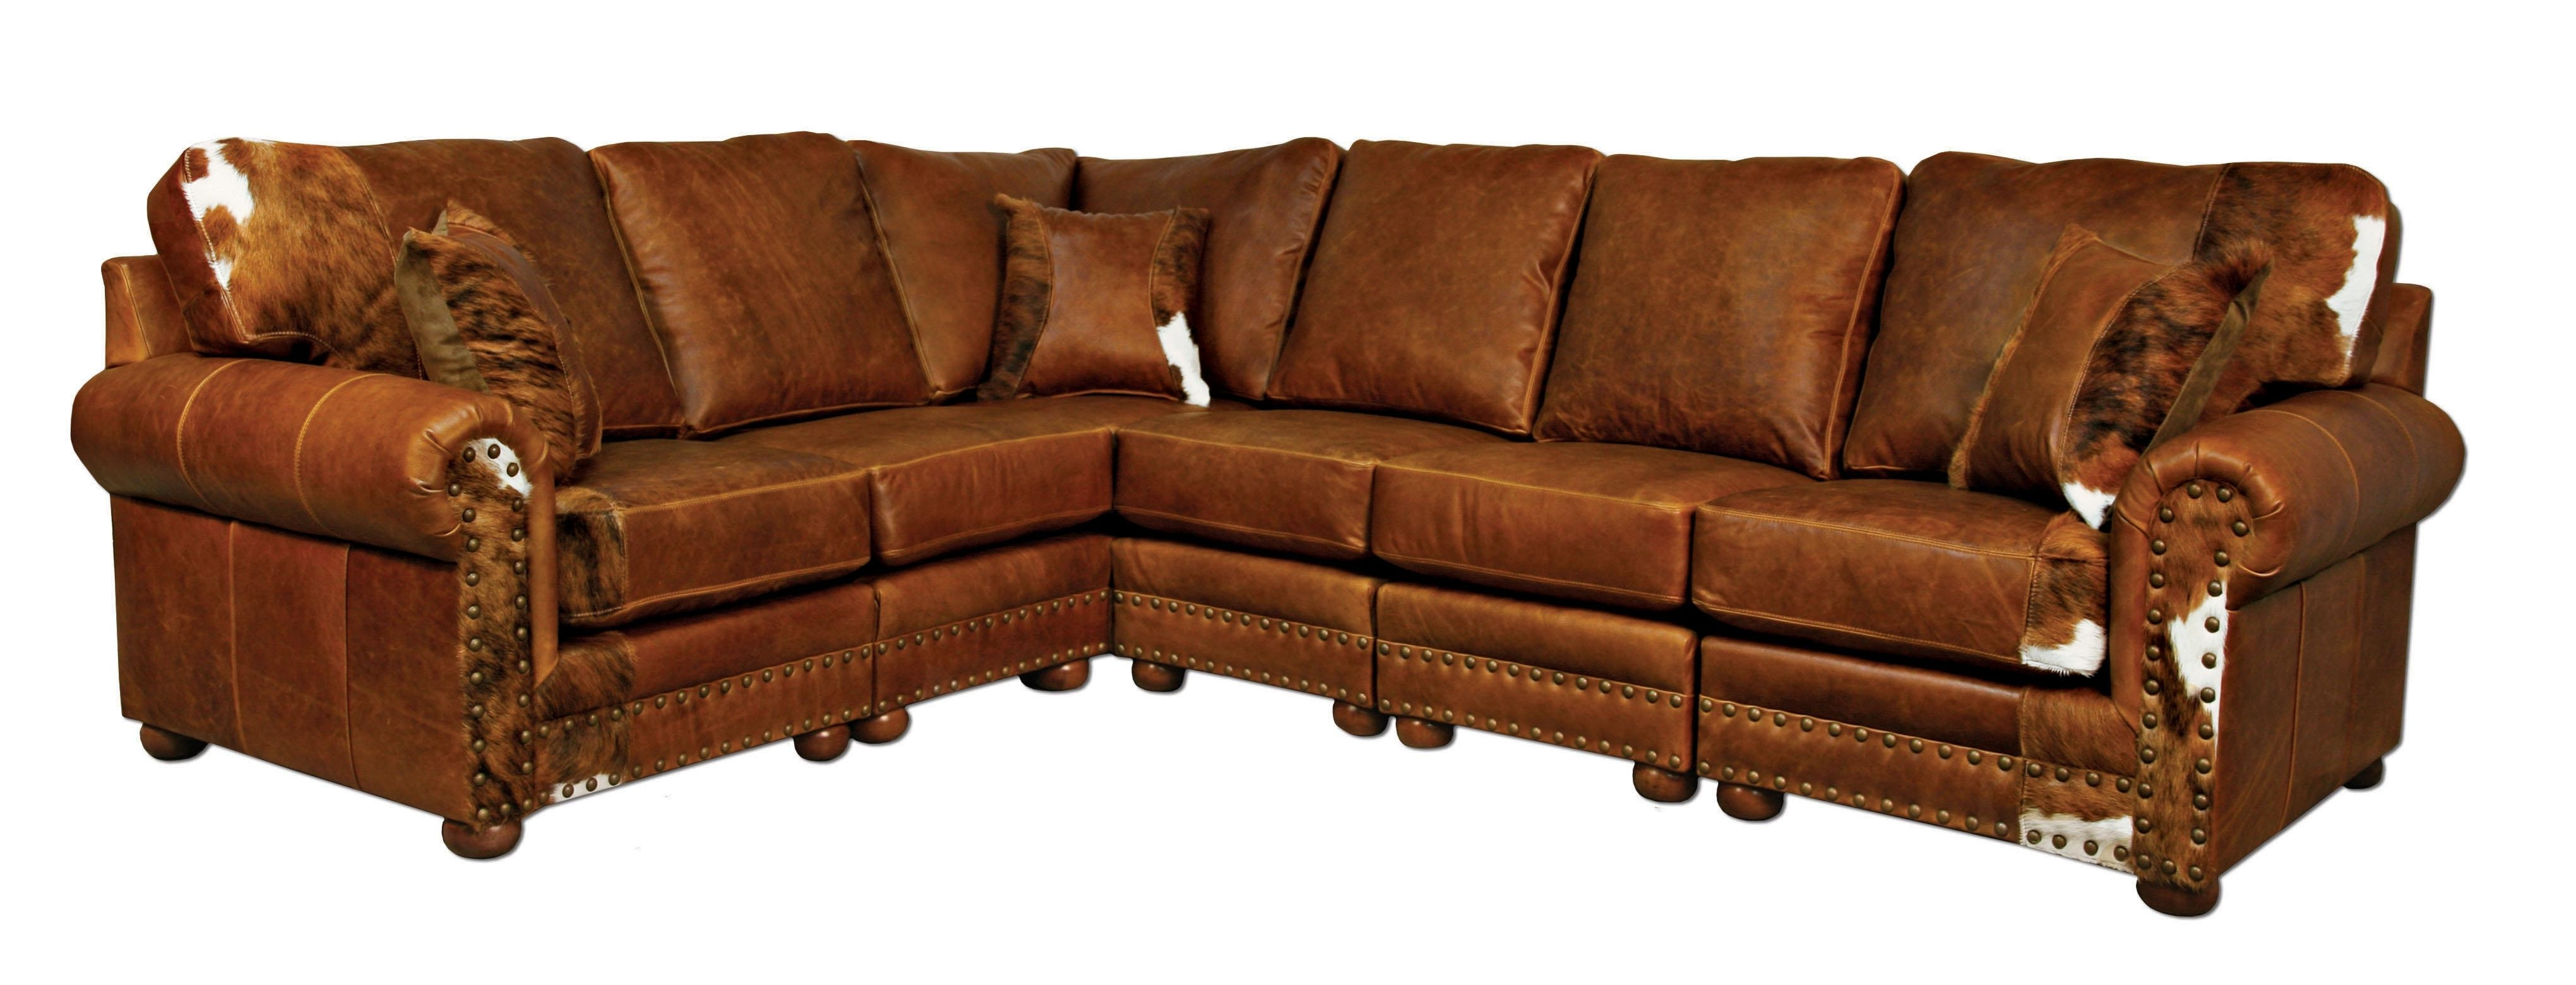 Western Style Sectional Sofas Within Most Recent Sectional Sofa Design: Amazing Western Sectional Sofa Western (View 18 of 20)